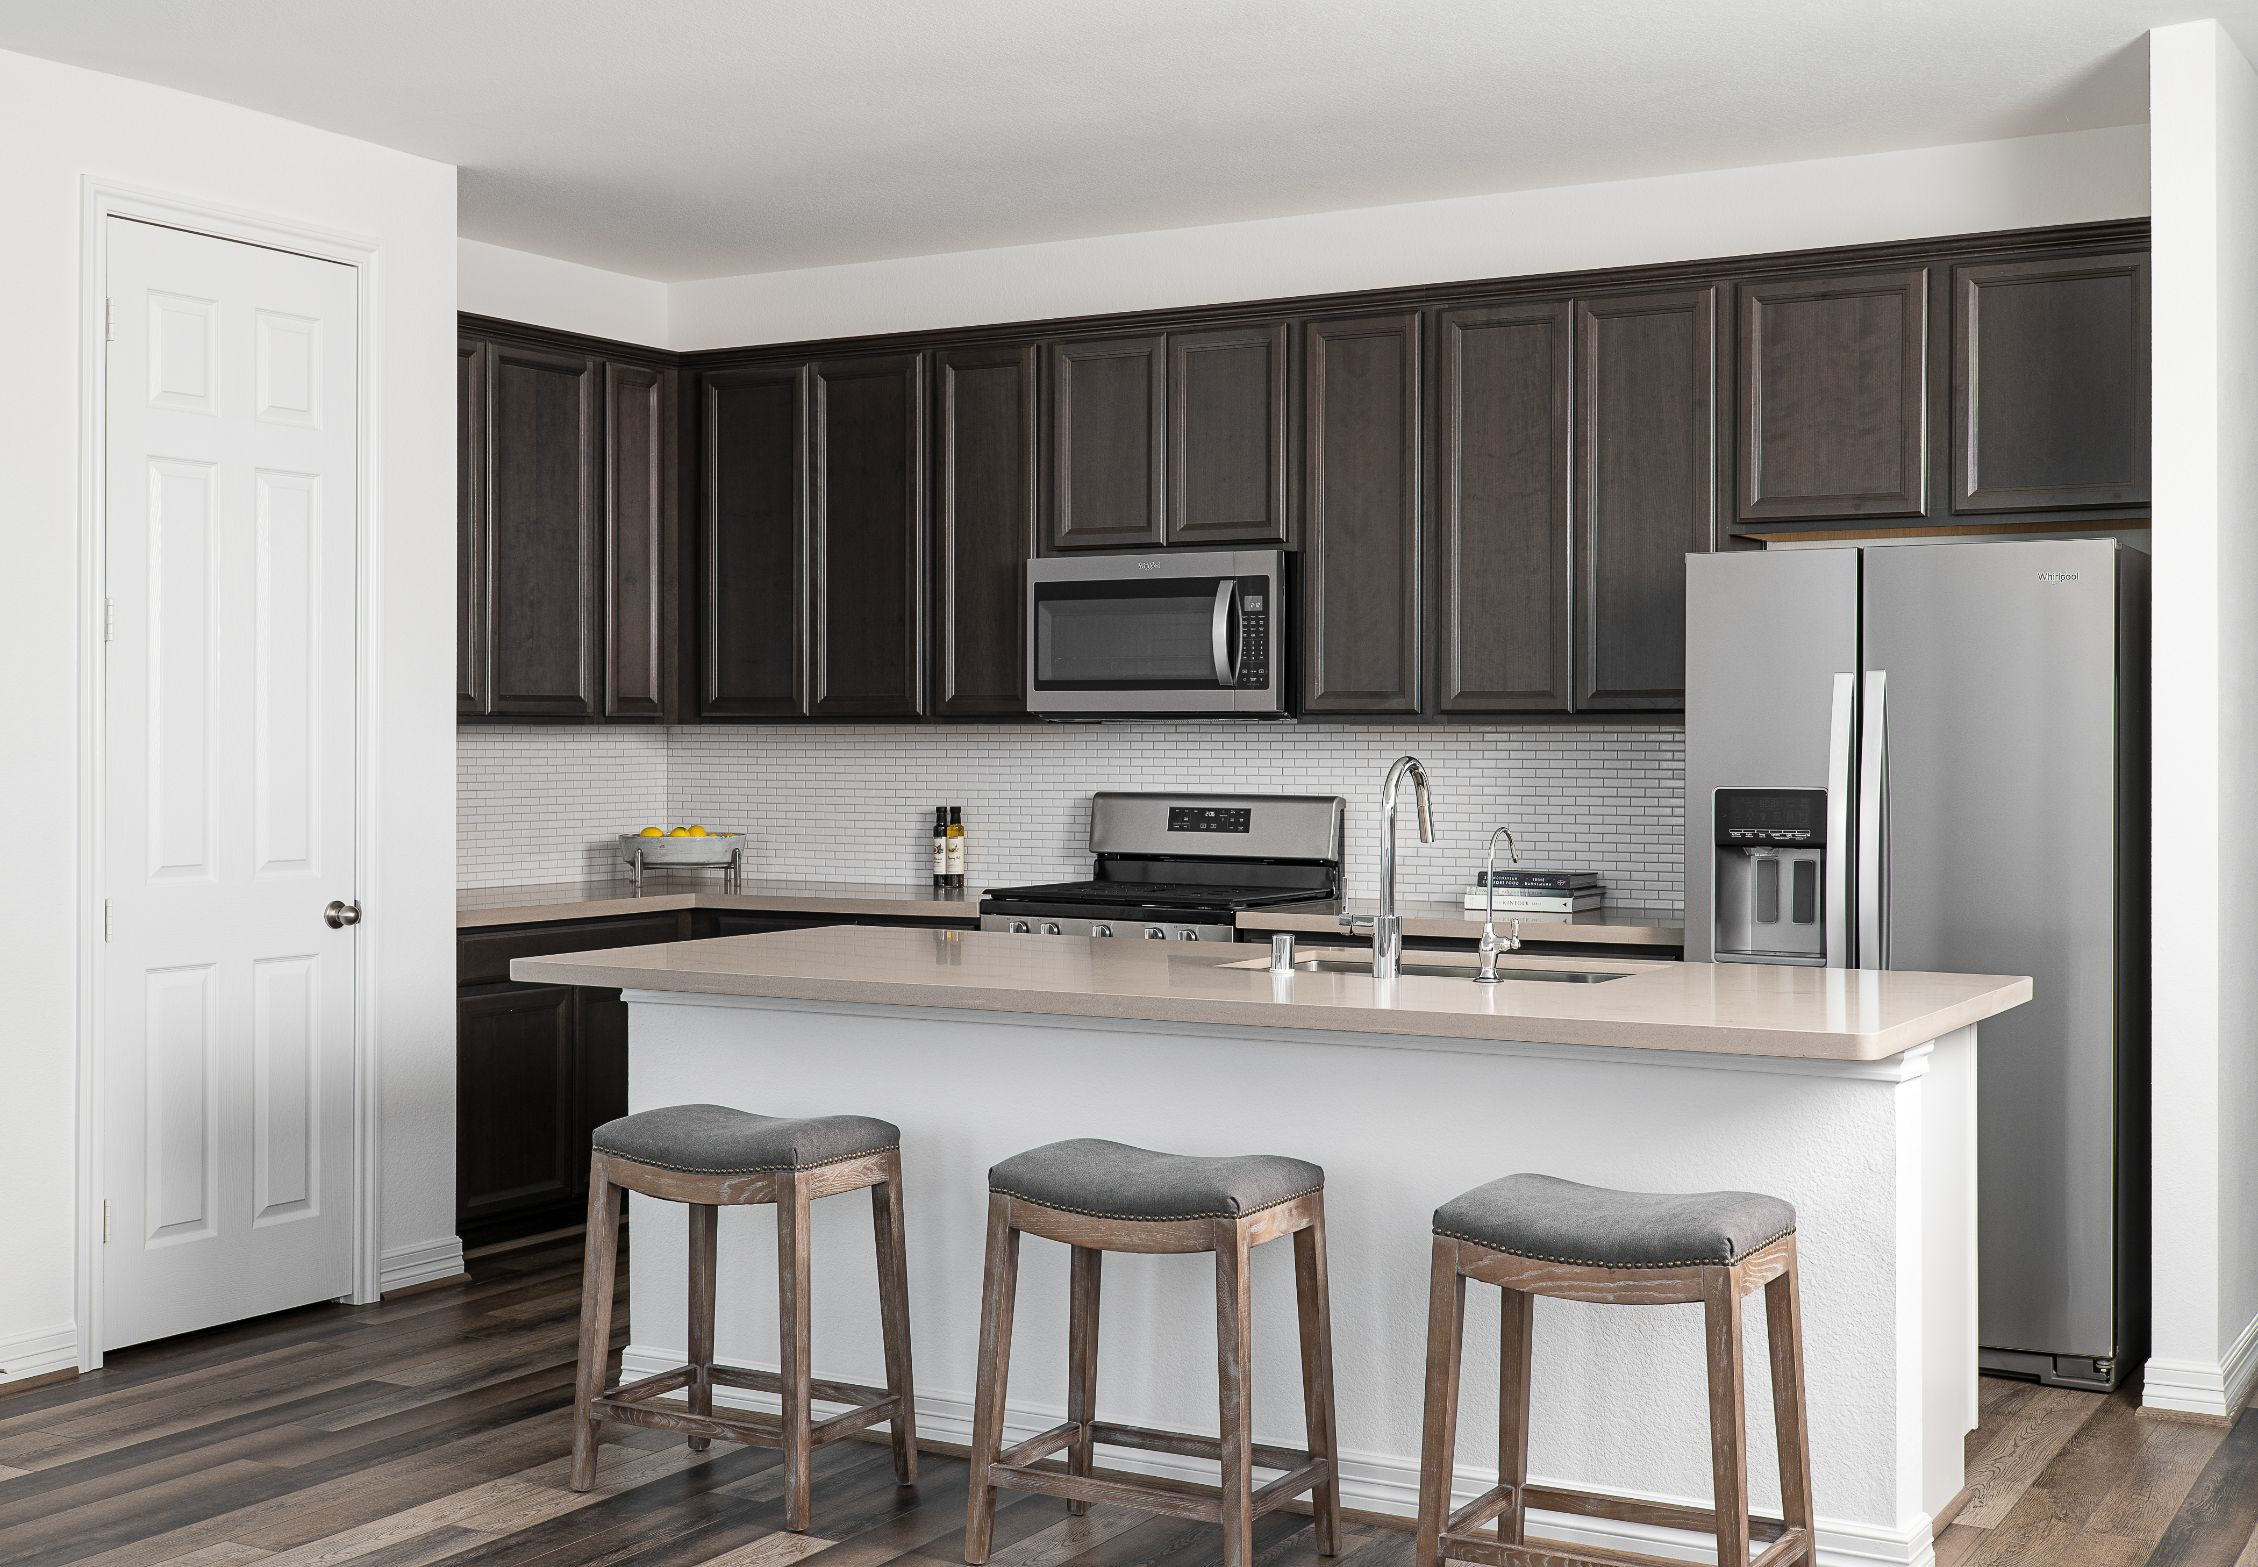 Kitchen featured in the Serena By Ashton Woods in Houston, TX